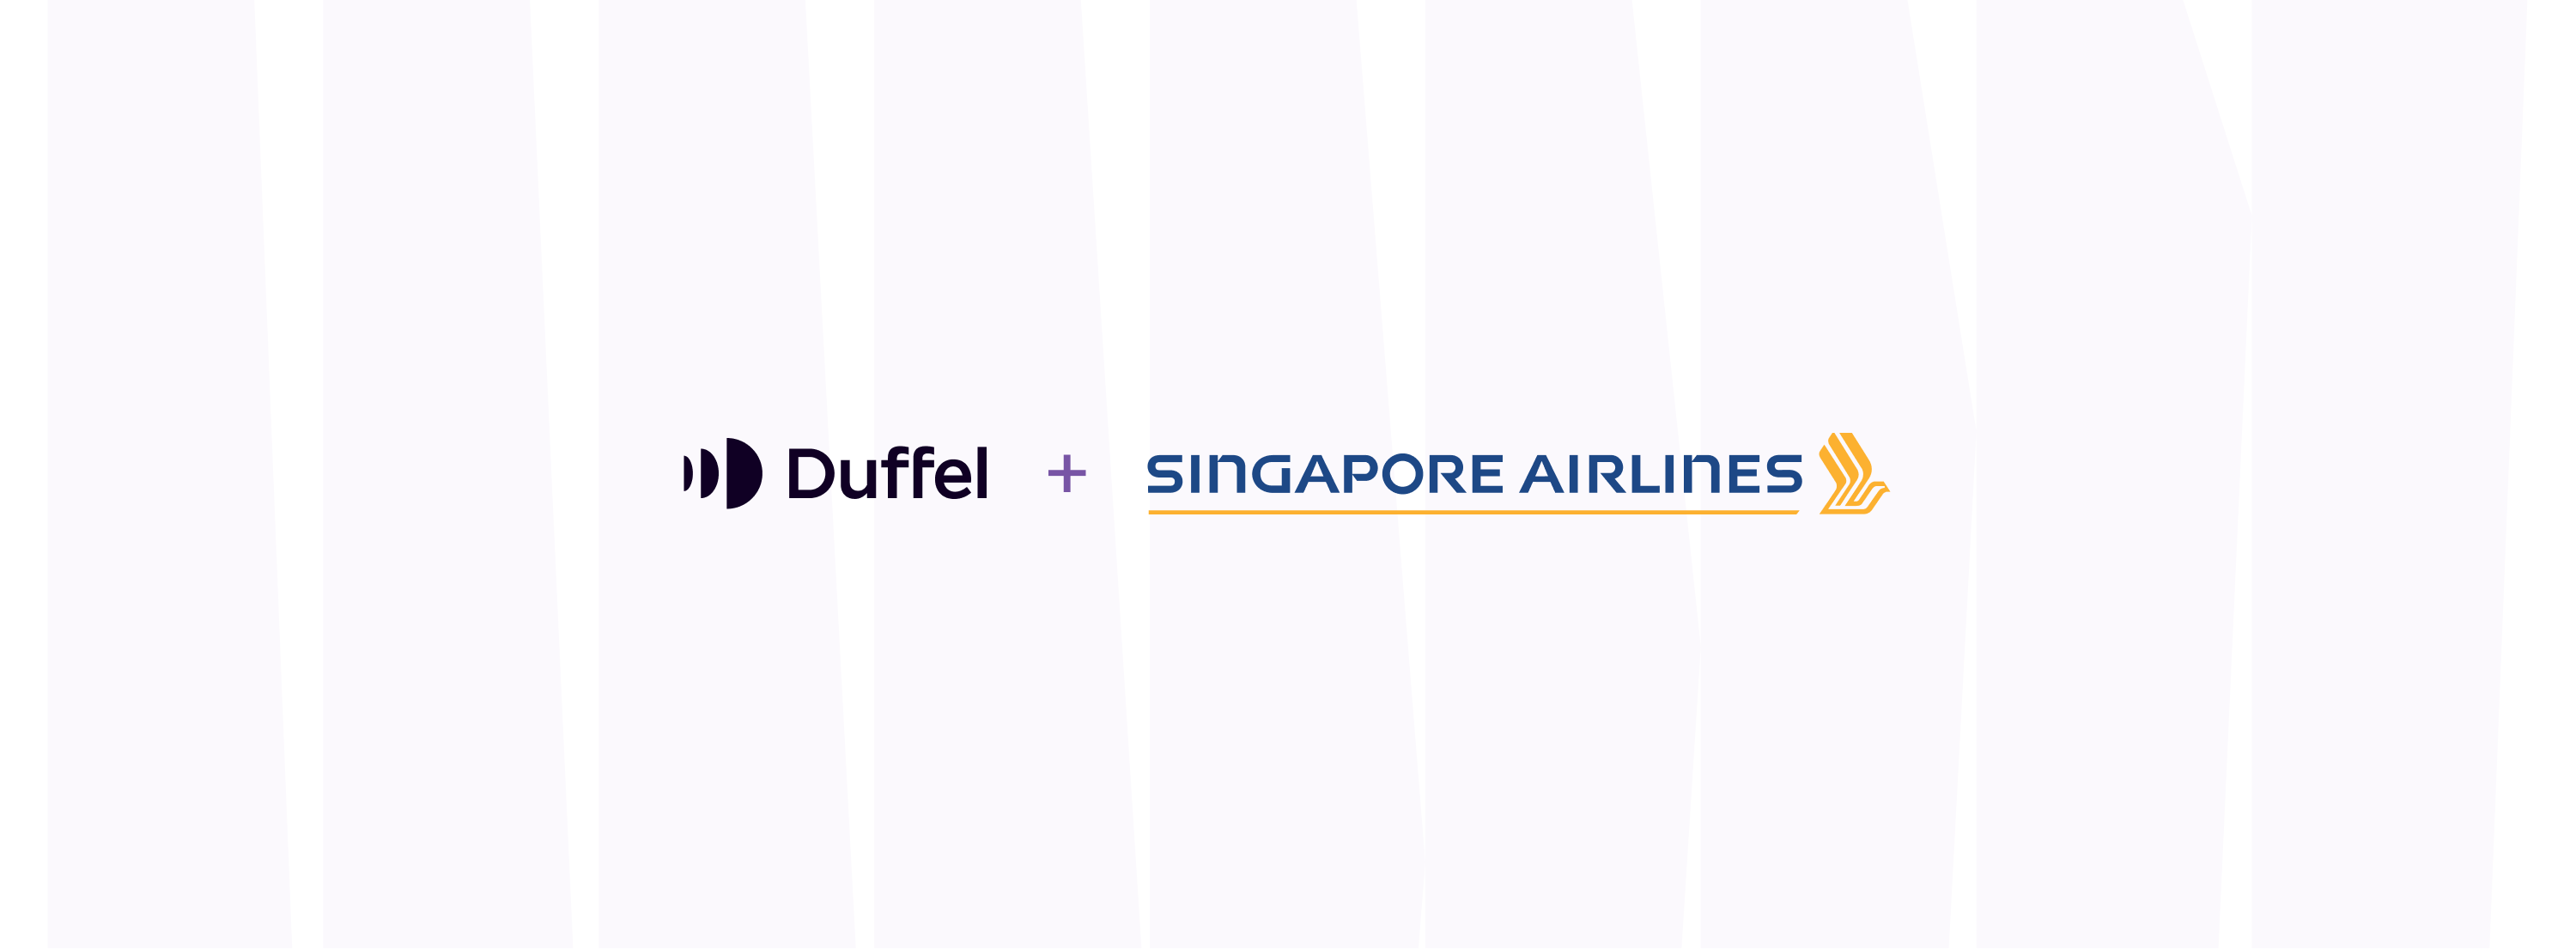 Singapore Airlines is live on Duffel and open to the world!